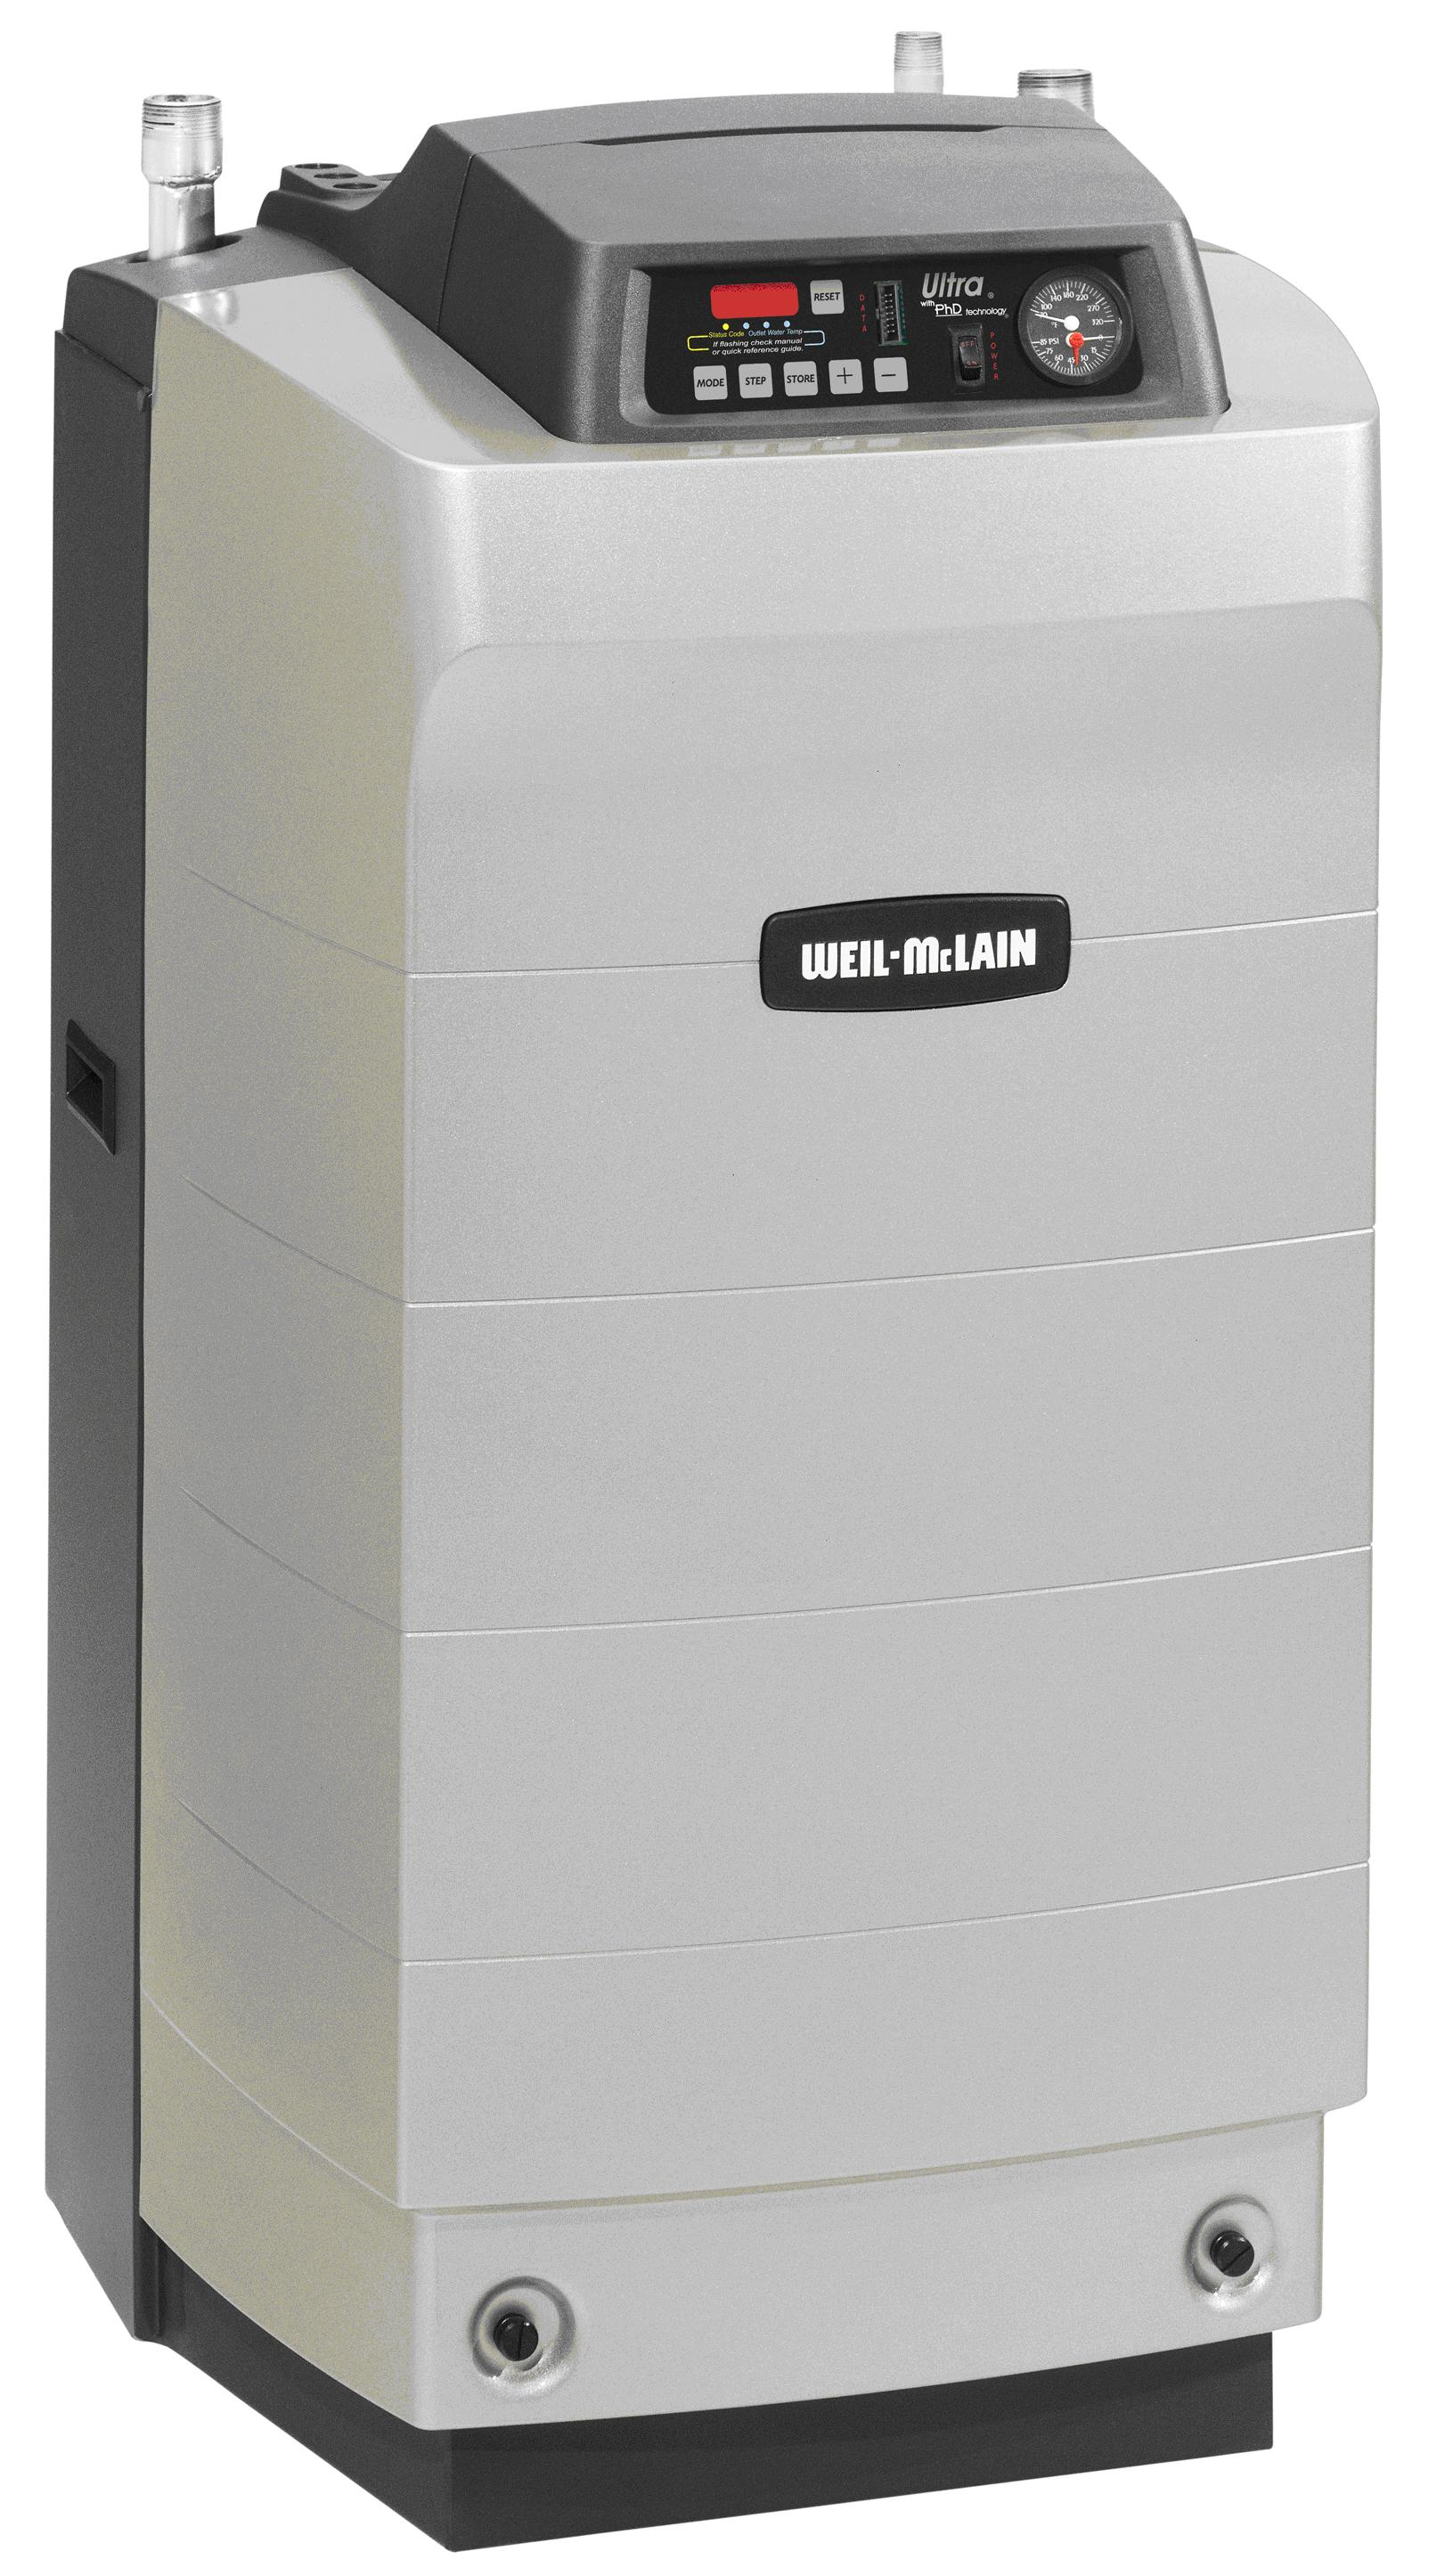 Weil-McLain recalled Ultra Series Boiler